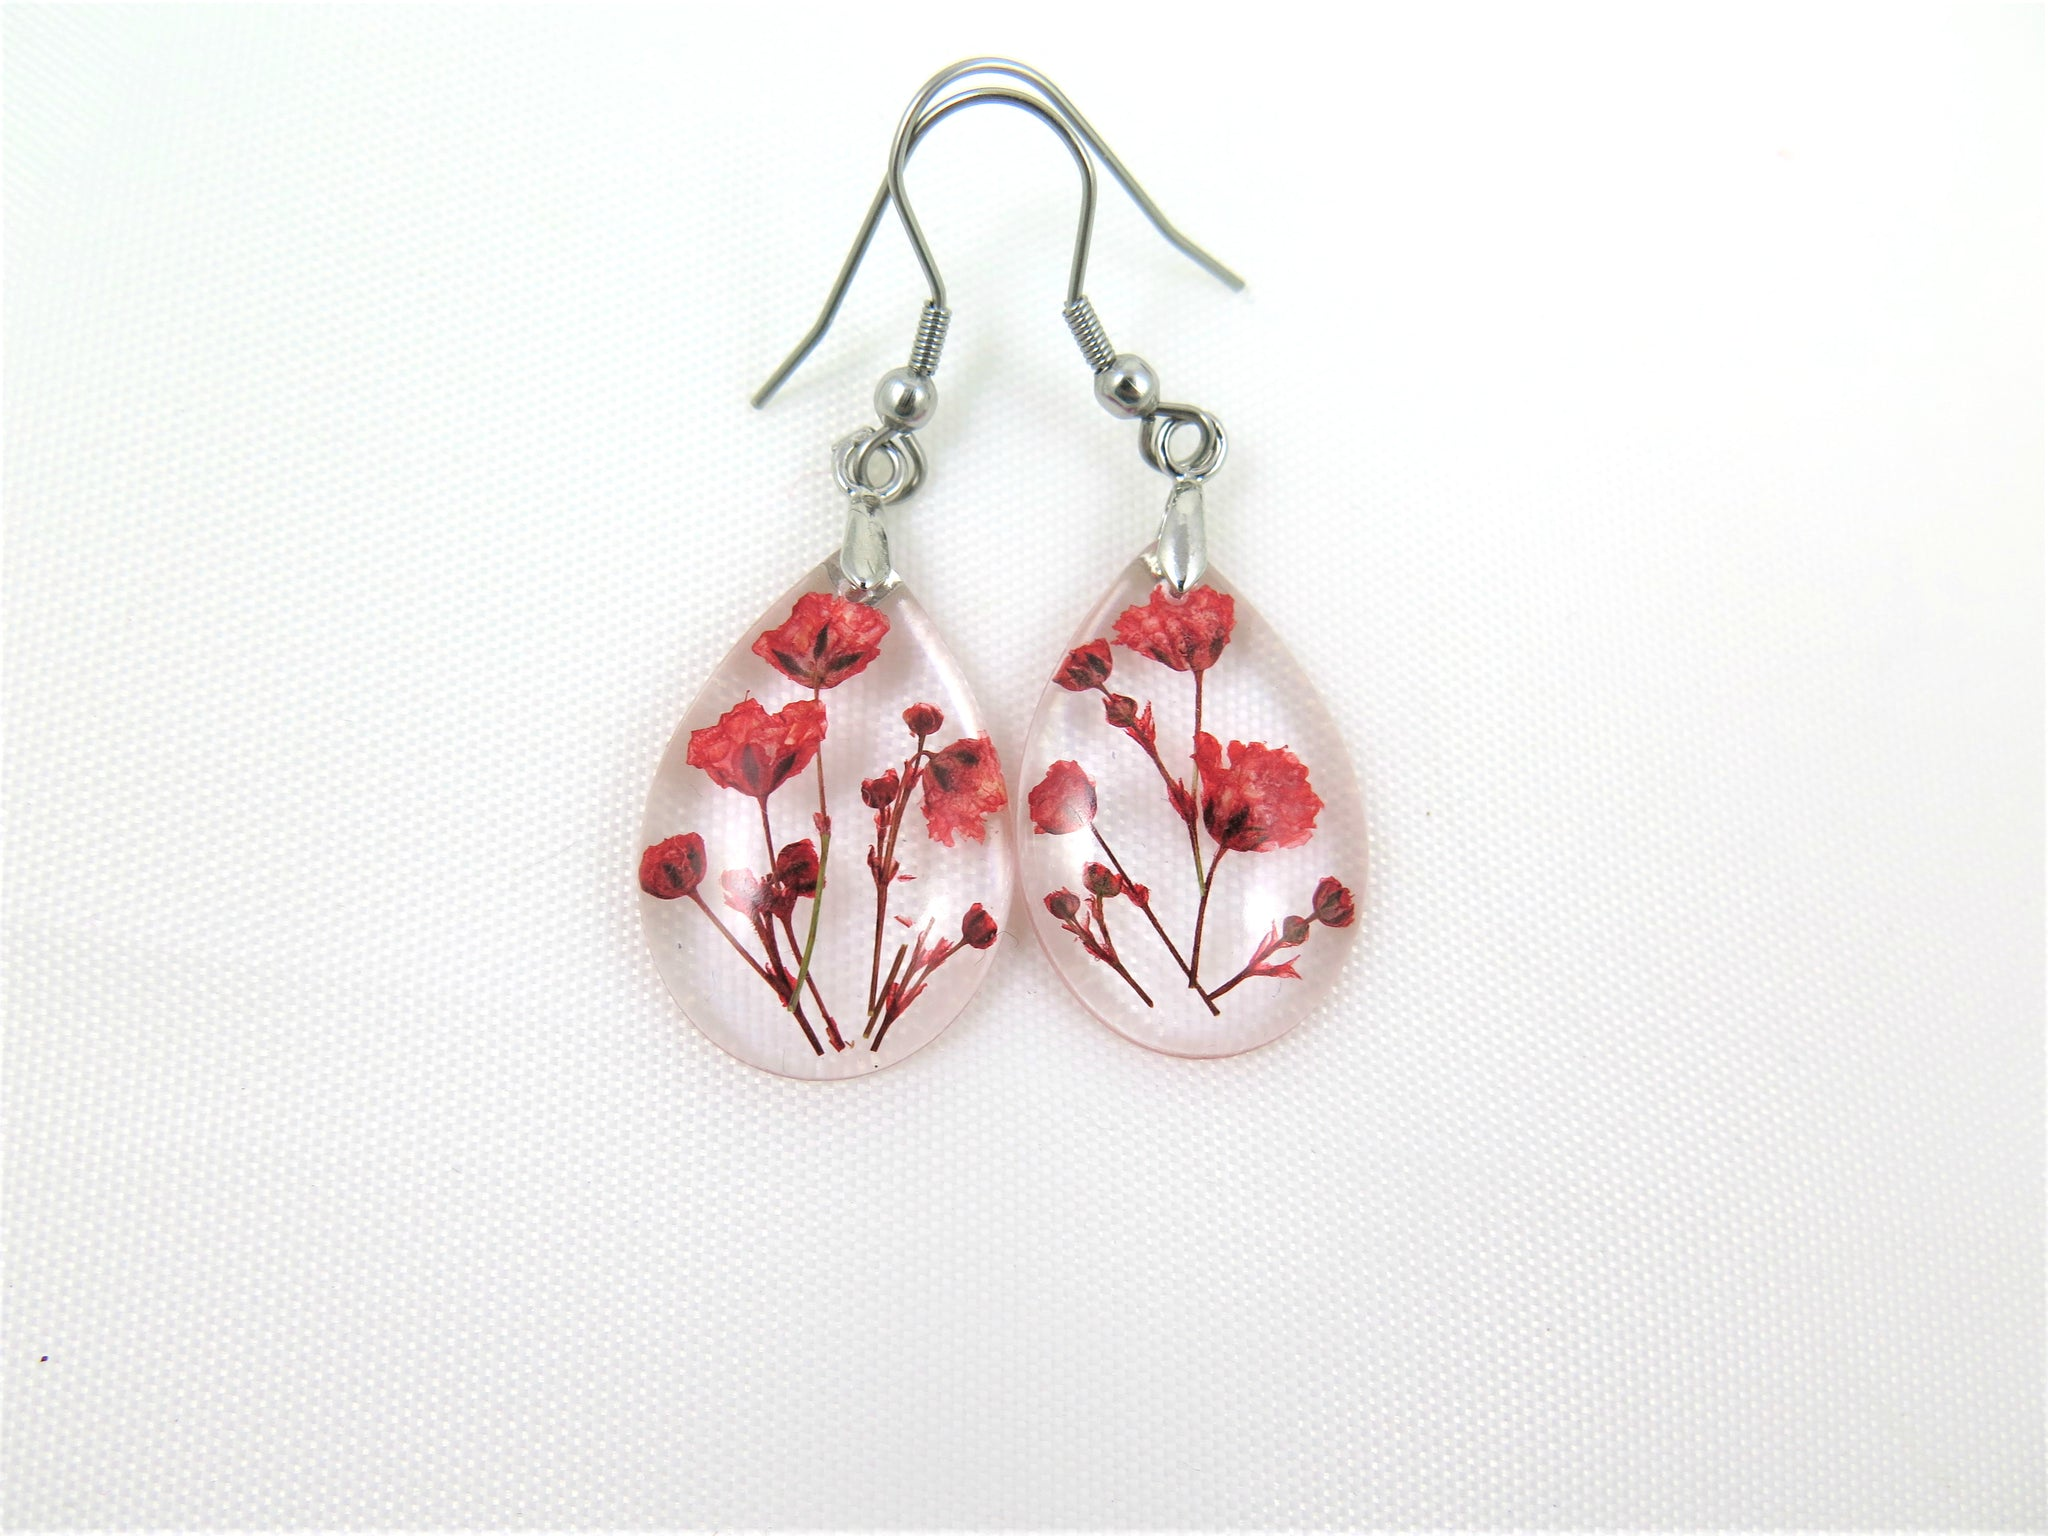 Botanical Resin Earrings, Real Flowers jewelry, Pressed Flowers handcrafted earrings